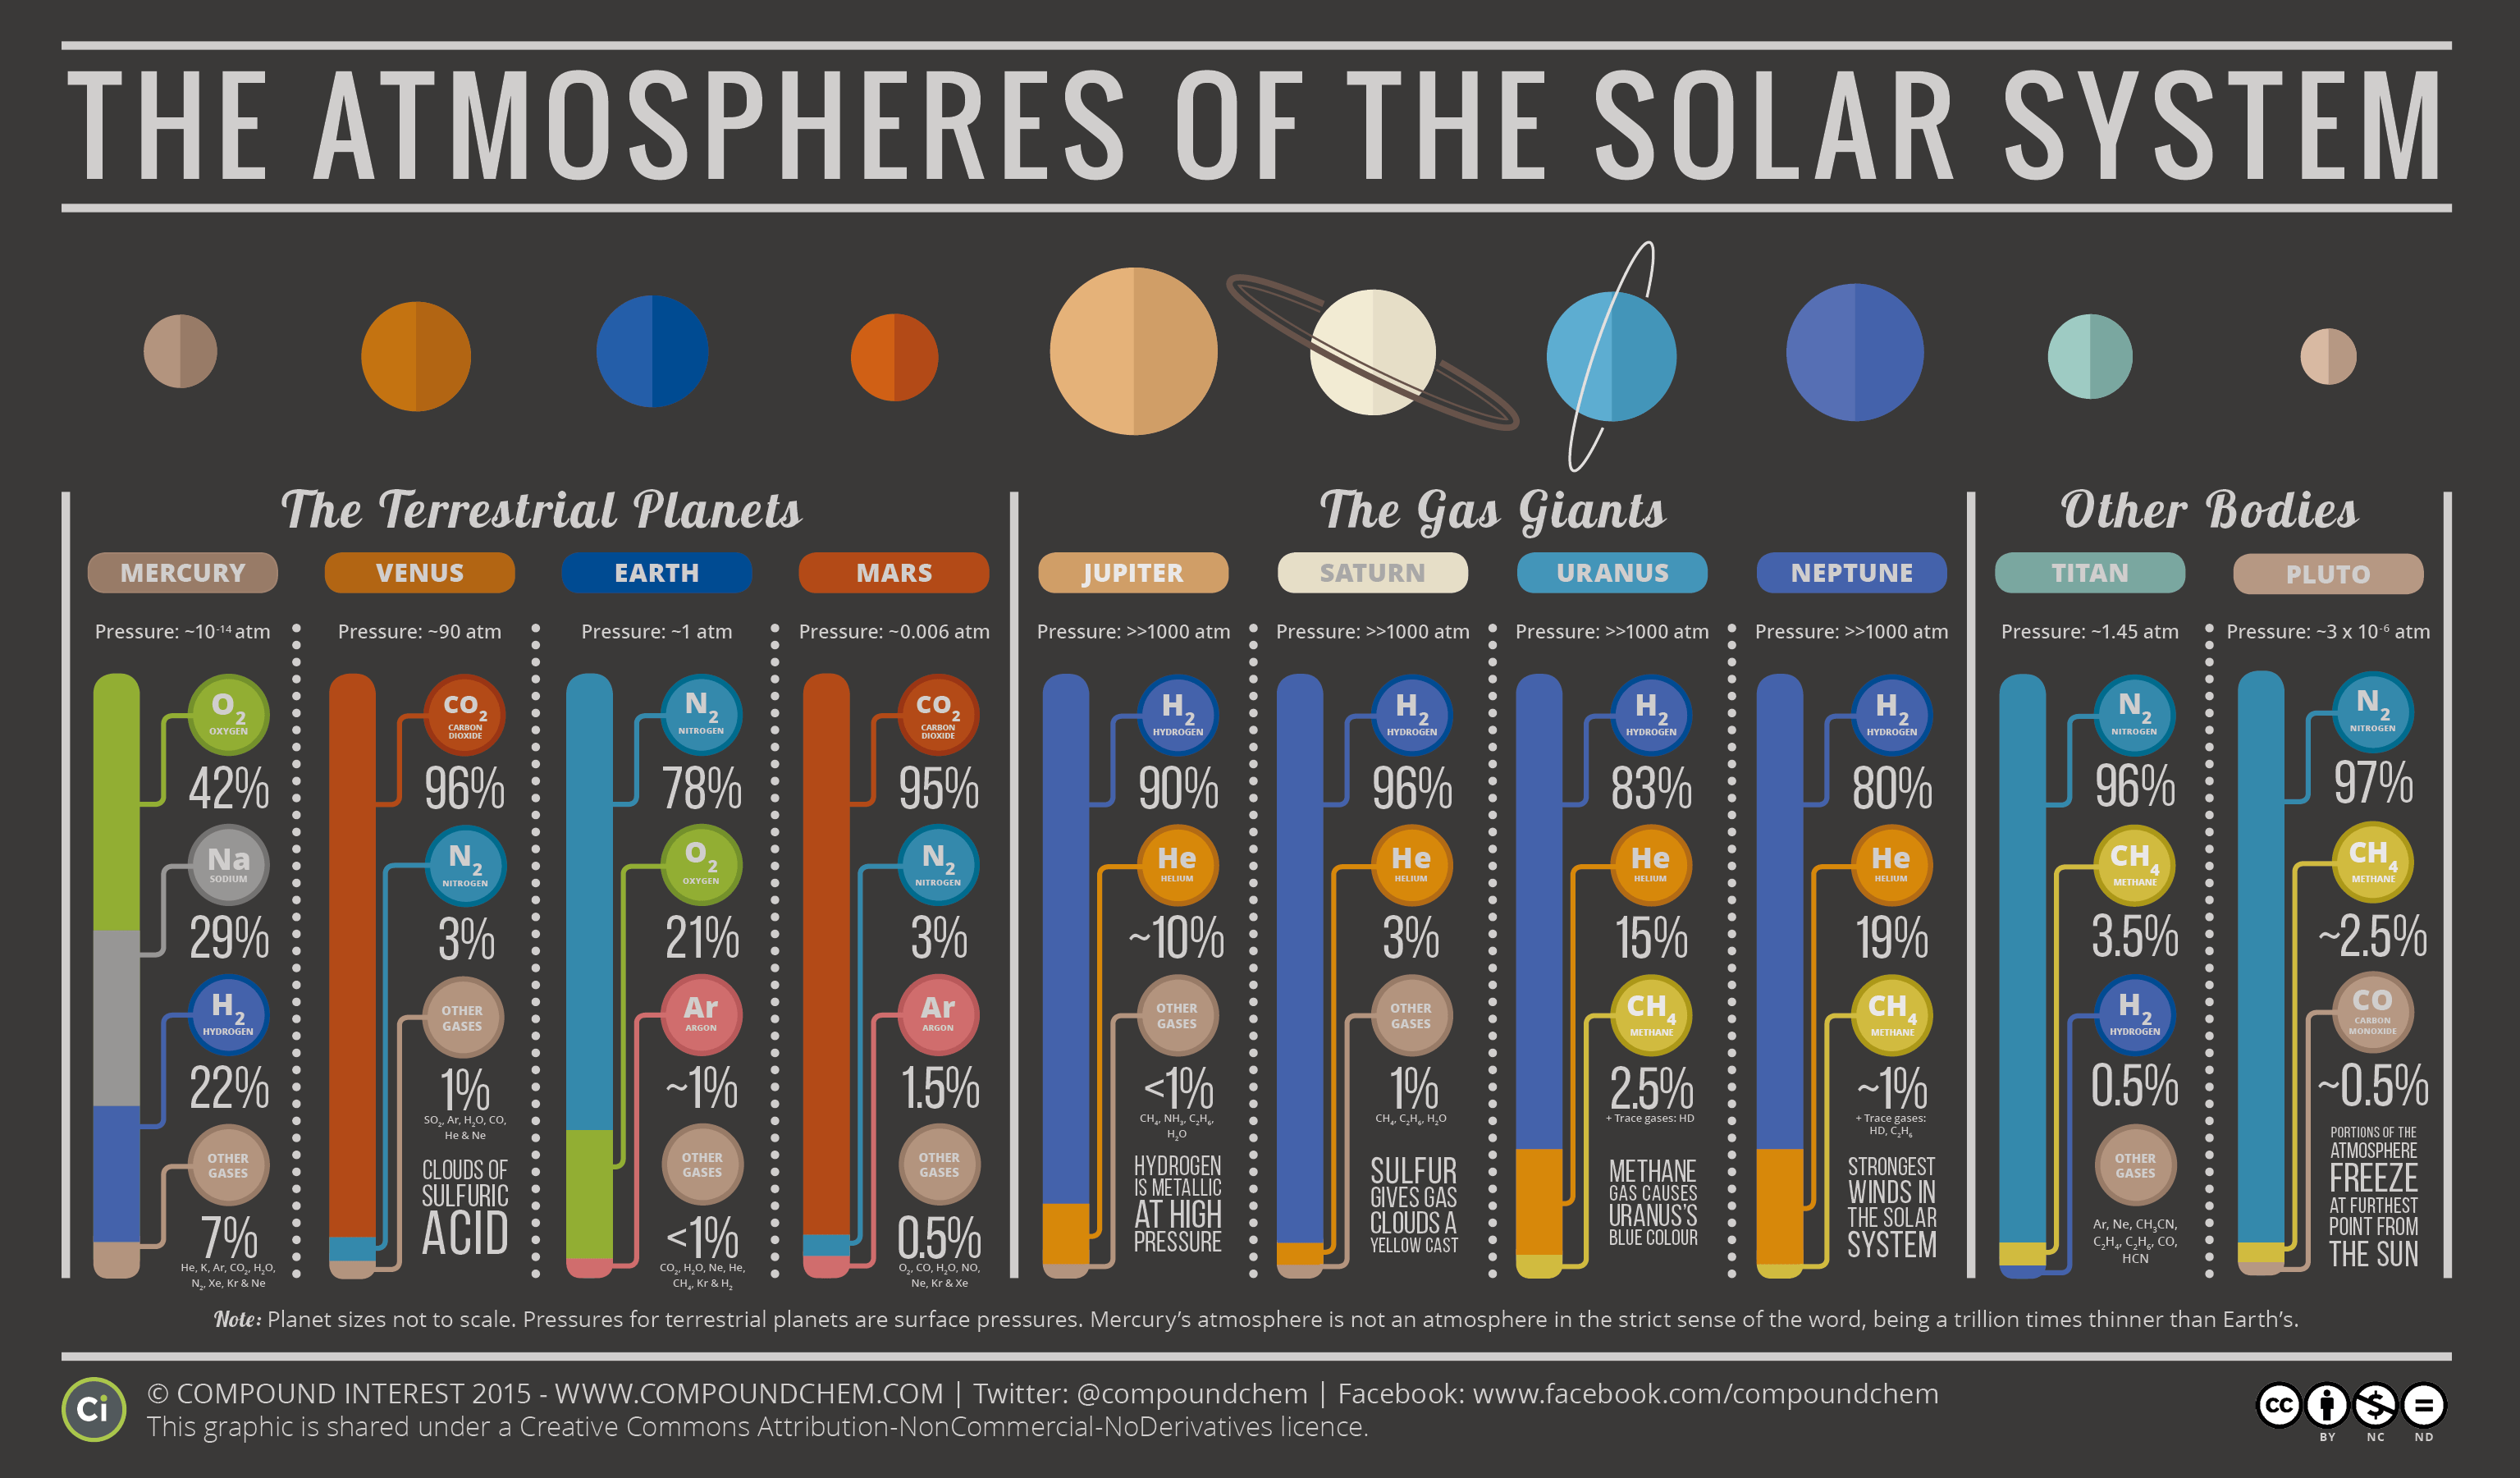 Compound Interest - The Atmospheres of the Solar System